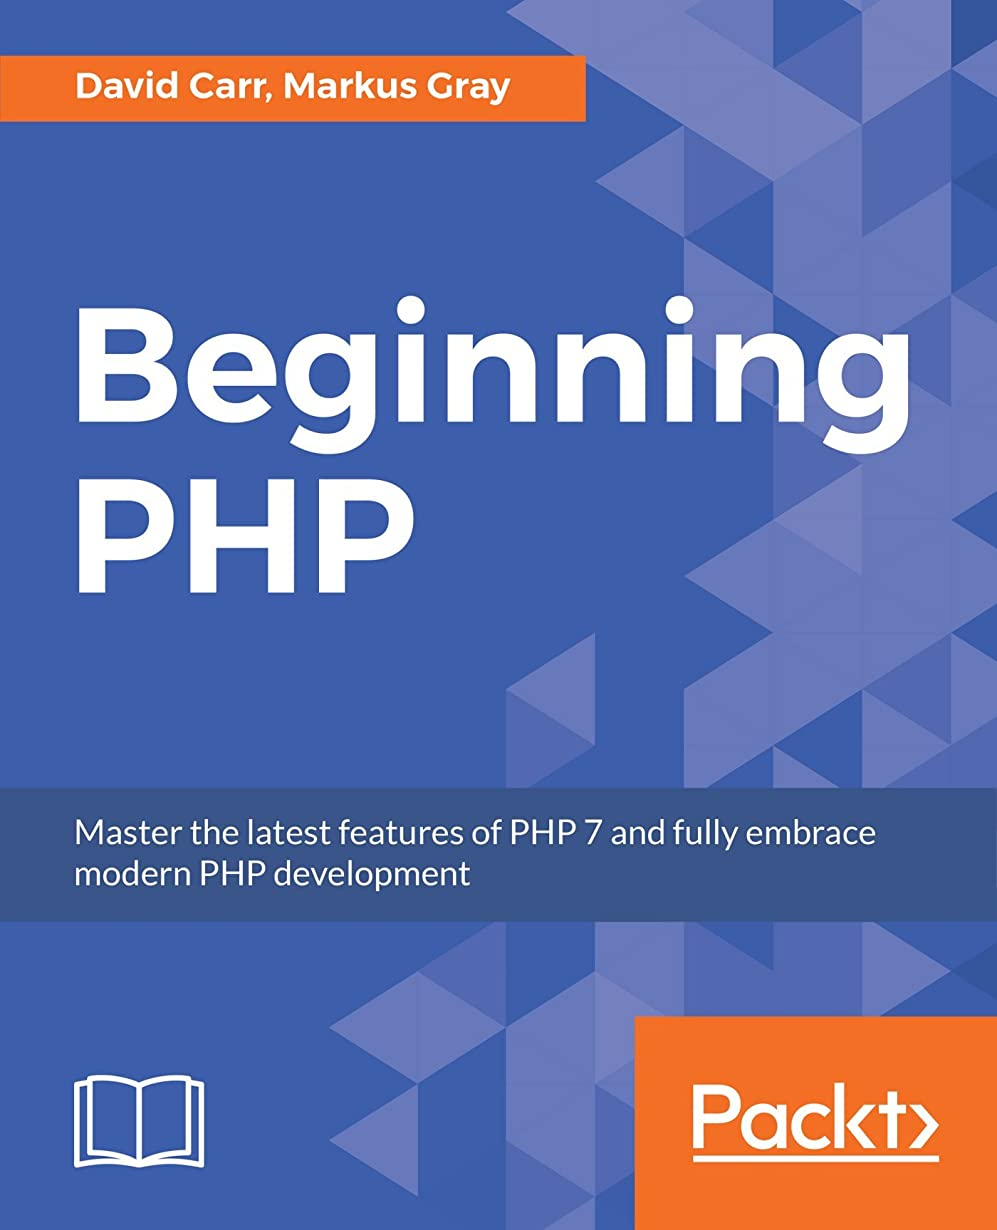 シリンダーフレキシブル変形するBeginning PHP: Master the latest features of PHP 7 and fully embrace modern PHP development (English Edition)